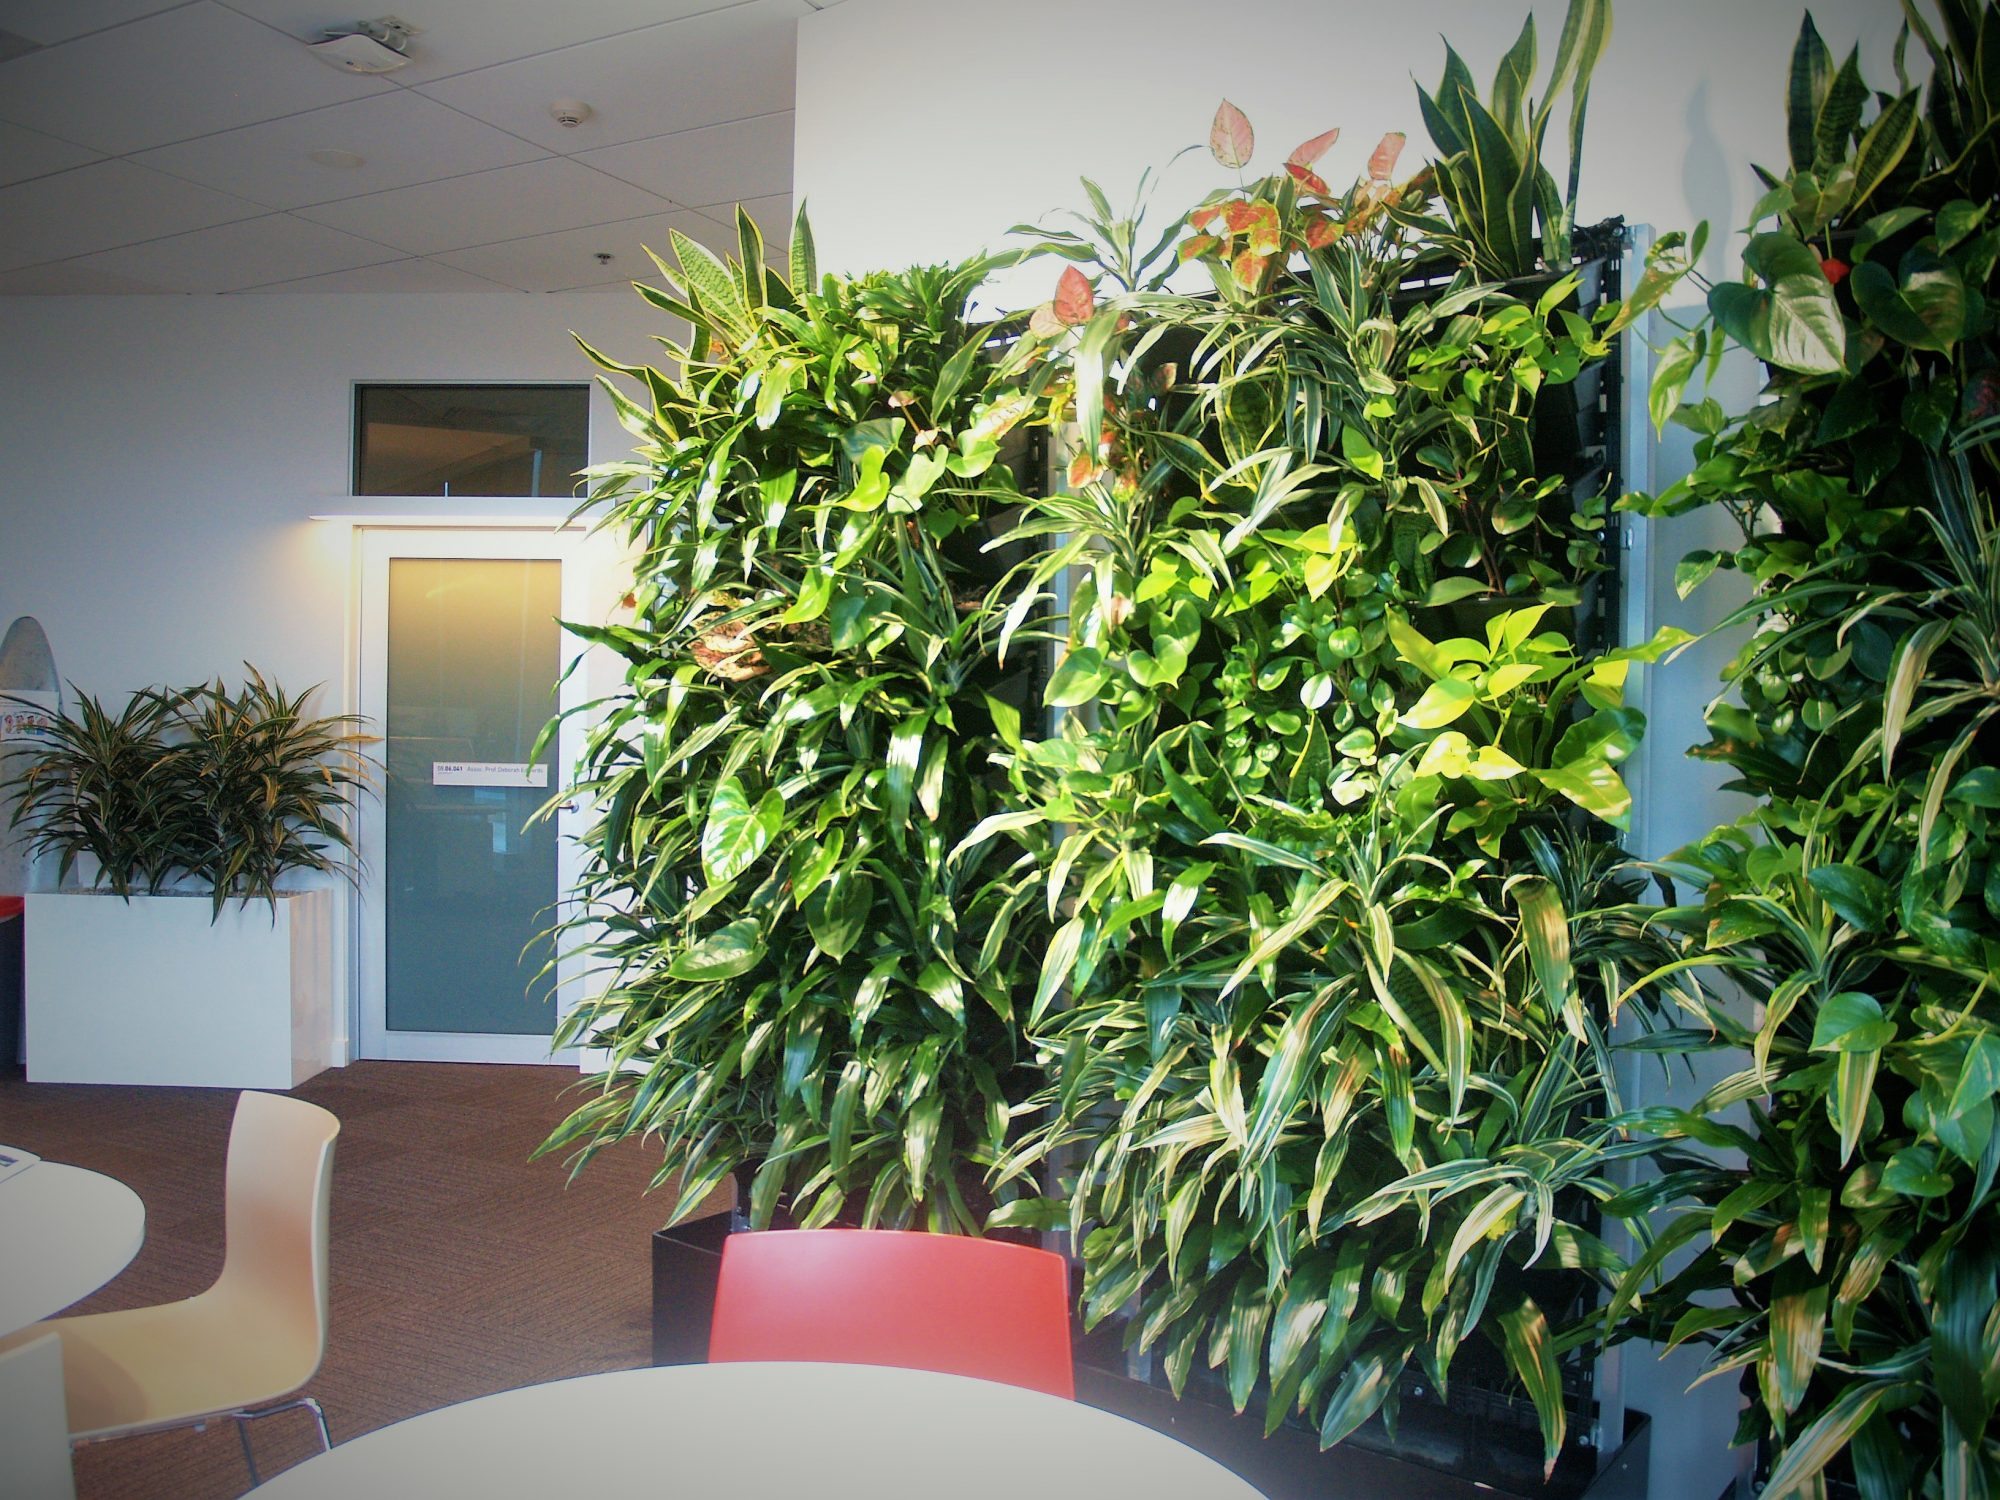 Green Walls, Vertical Garden, Green Design Indoor Plant Hire, Office Plant hire